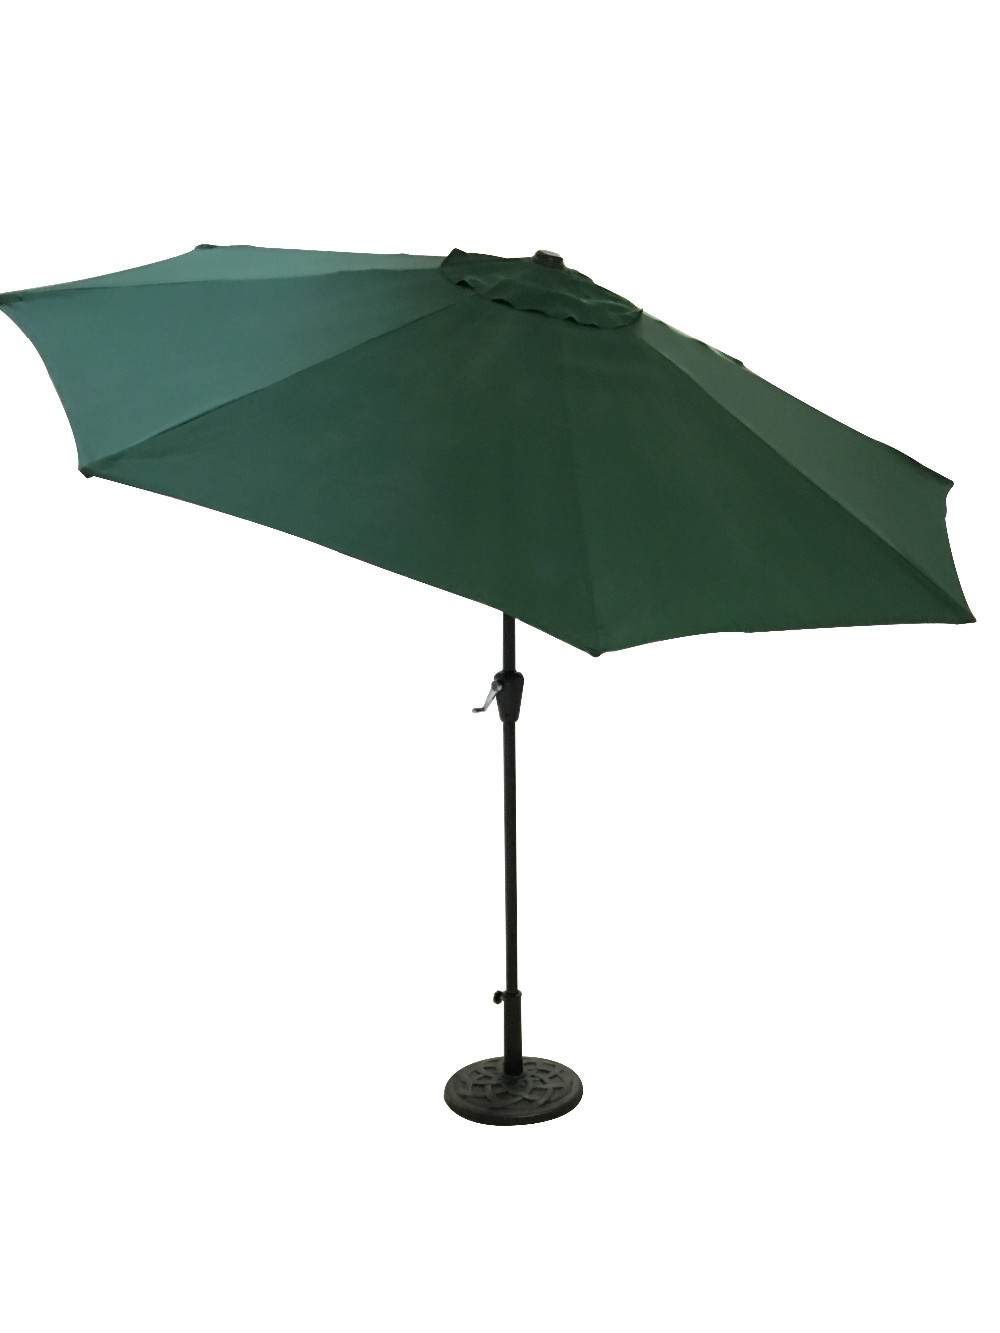 270cm Patio Umbrella with Auto Tilt and Crank